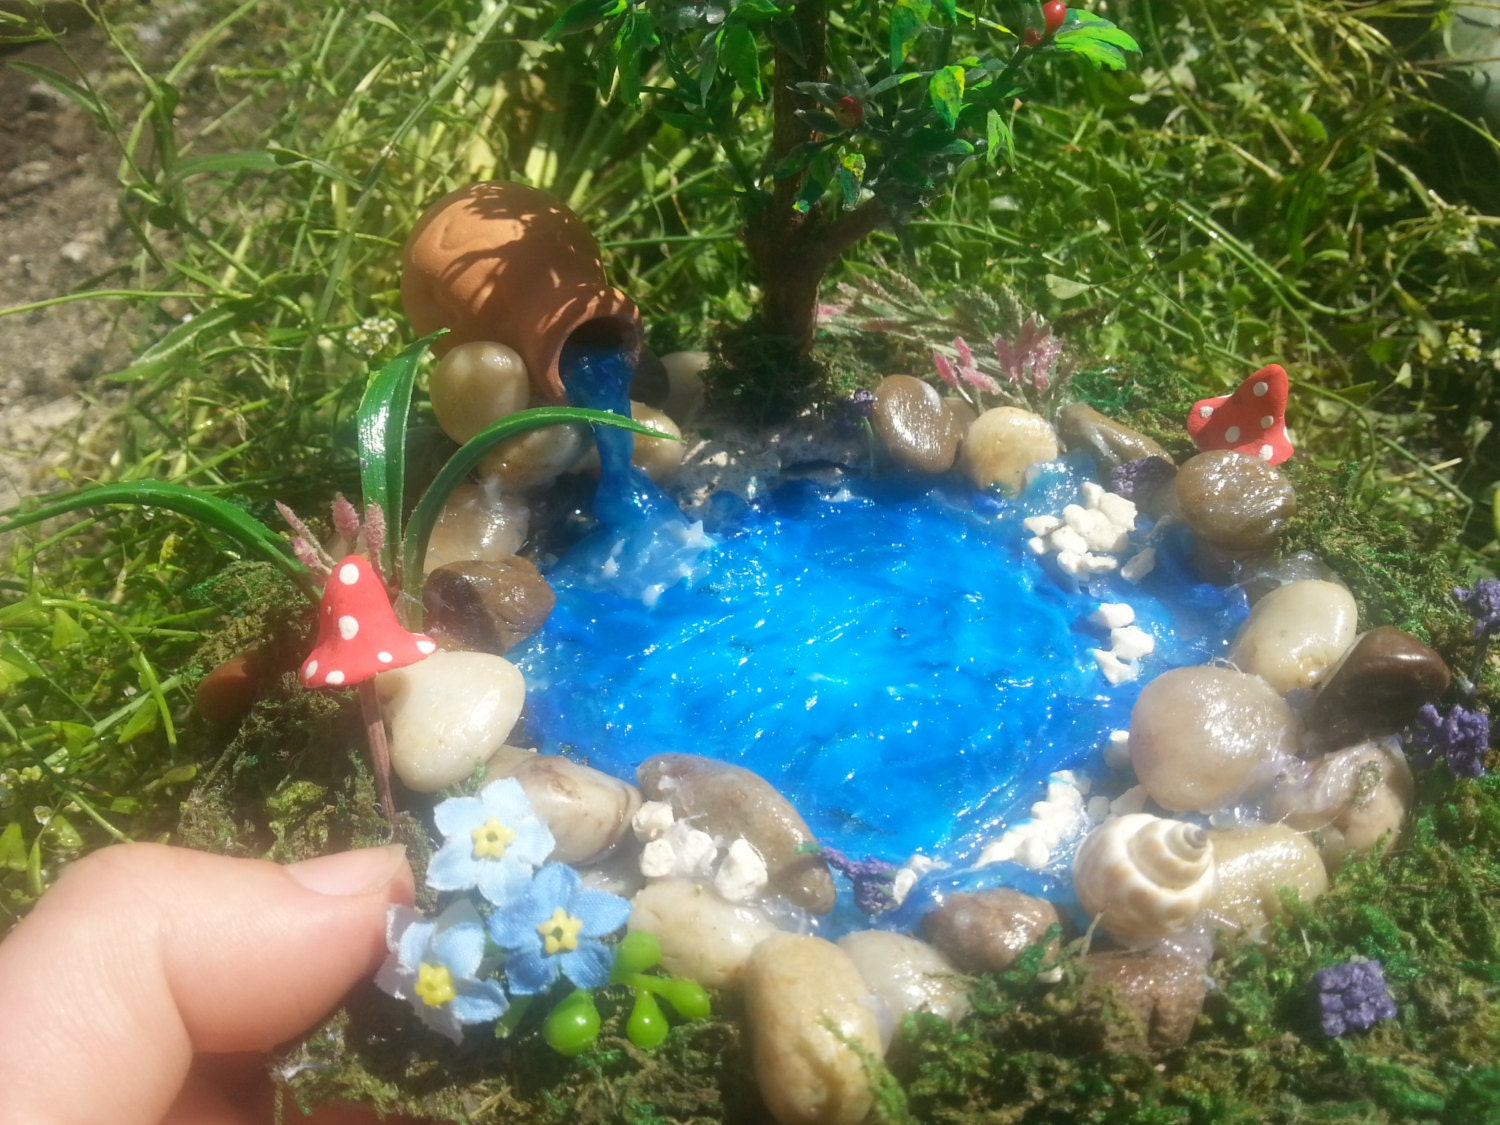 Sale fairy garden pondfairy pond miniature by for Mini garden pool